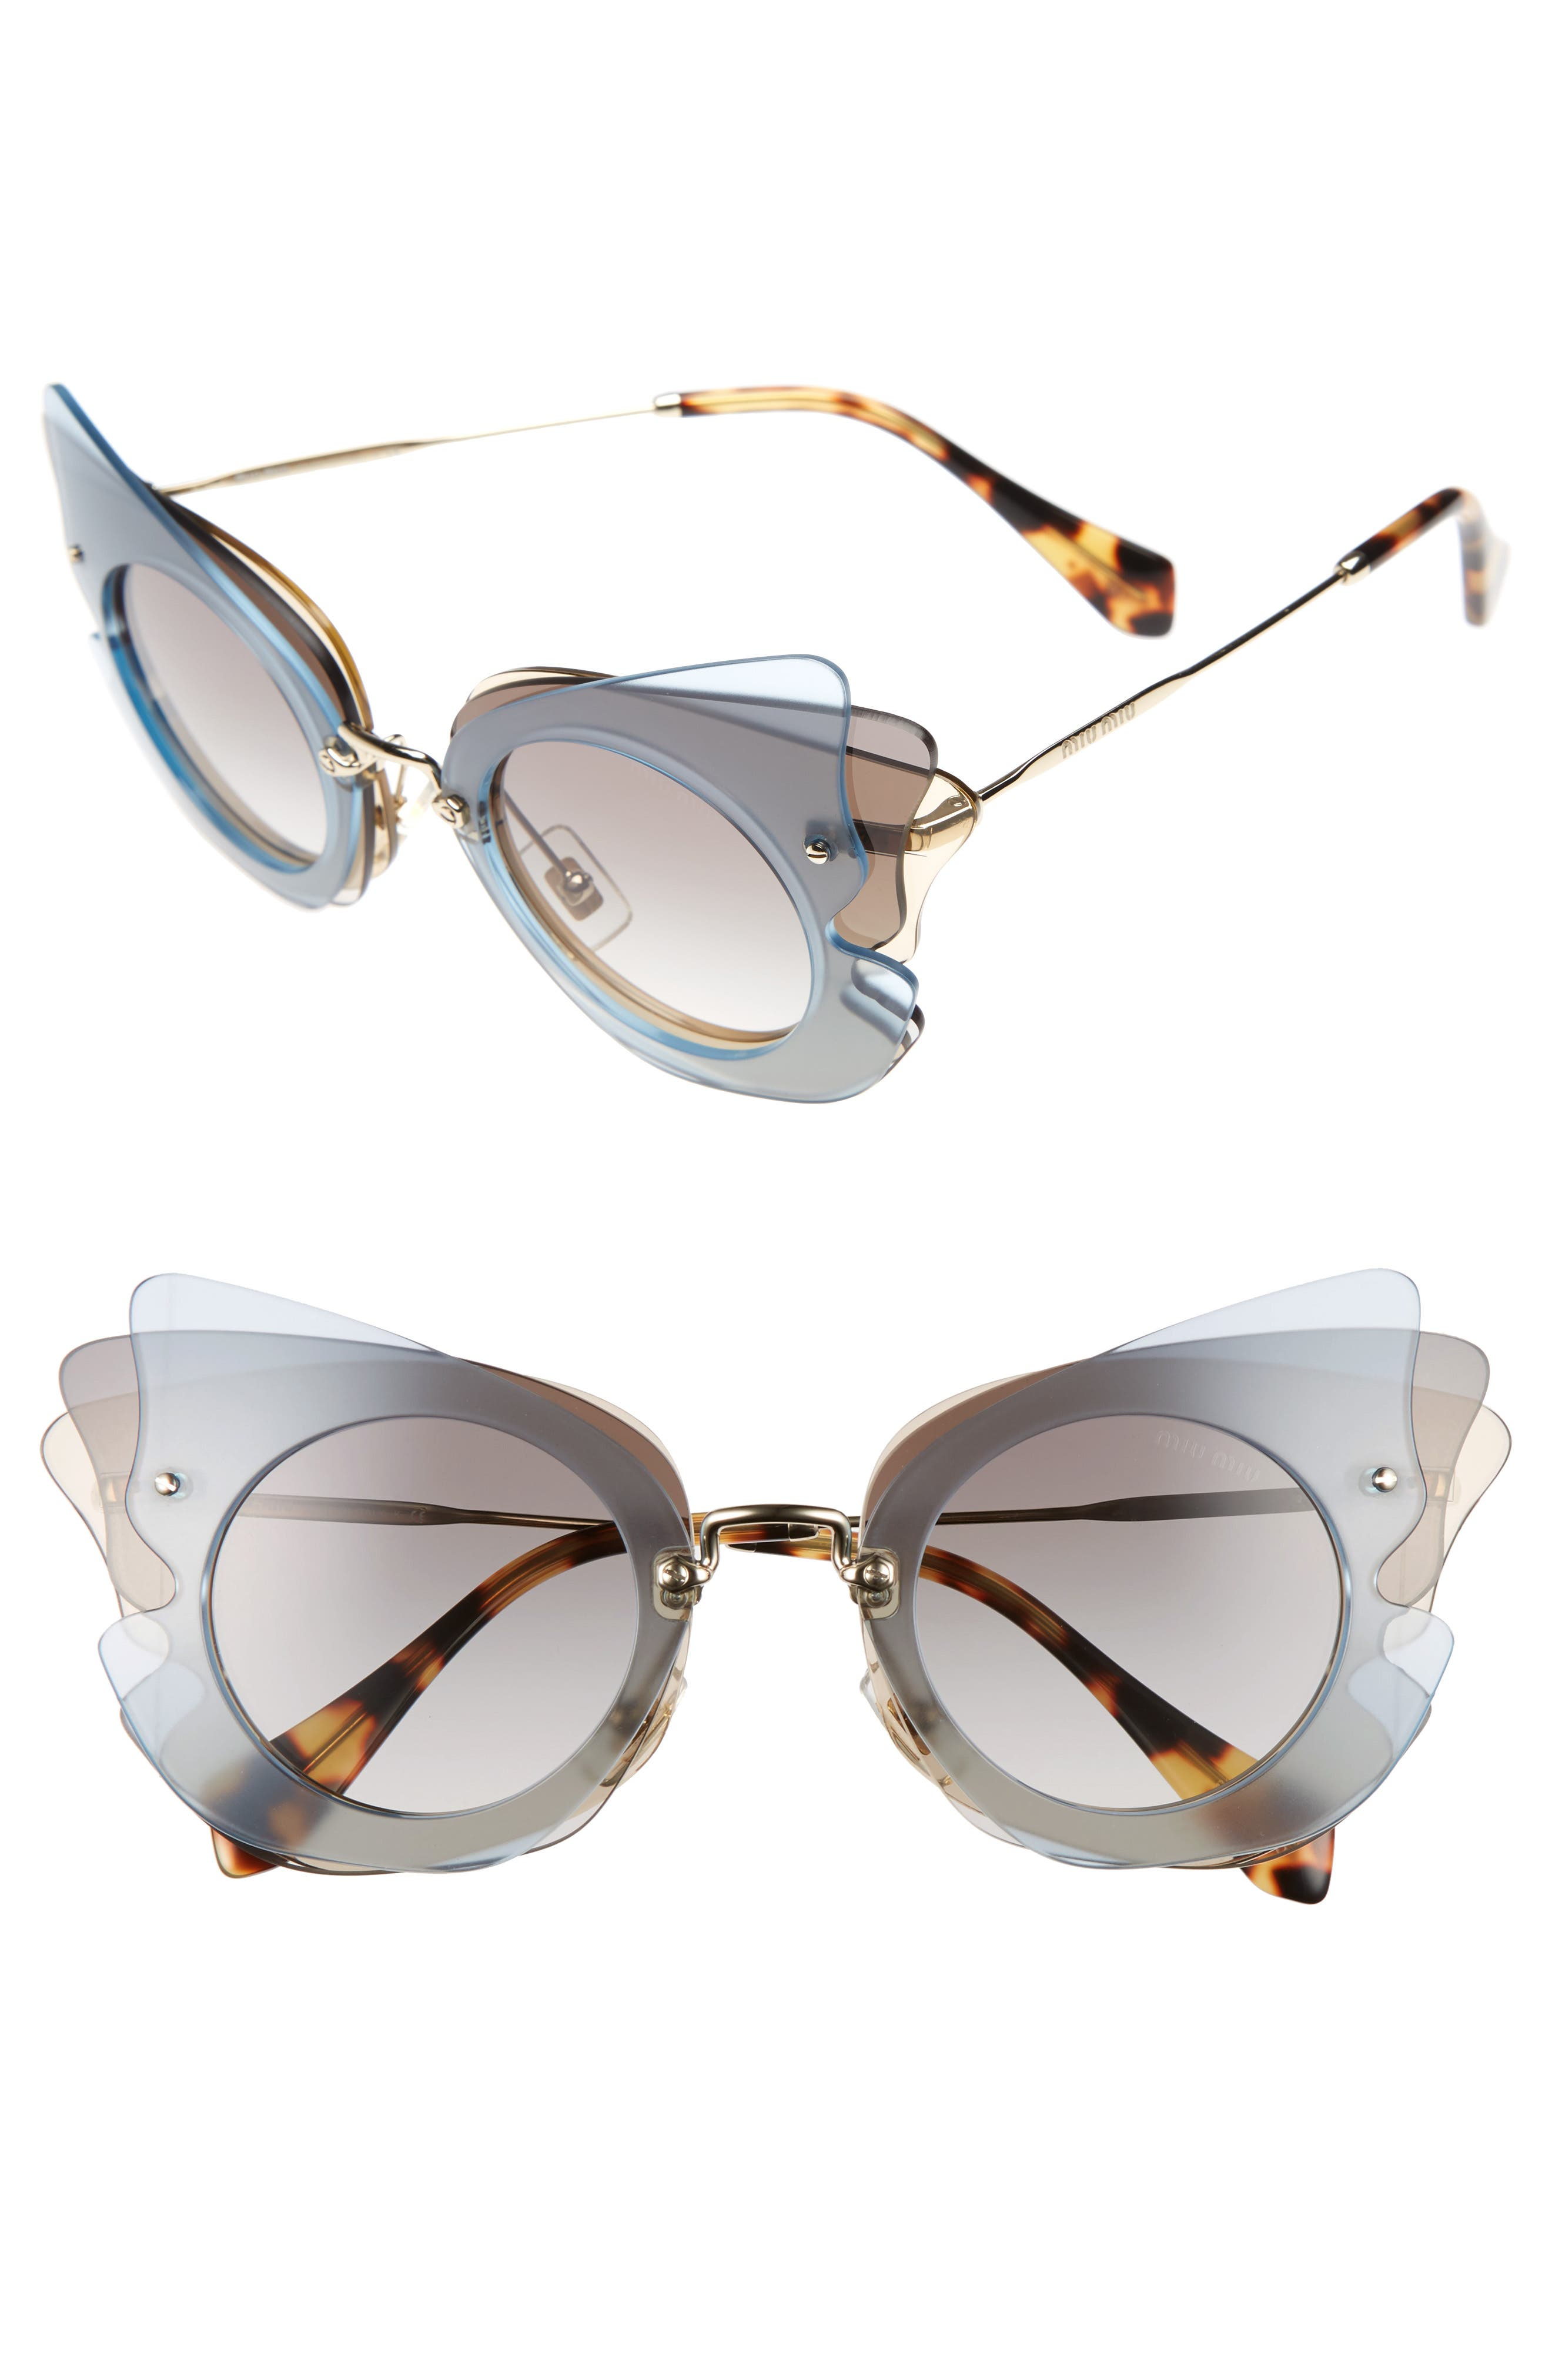 63mm Butterfly Sunglasses,                         Main,                         color, 710